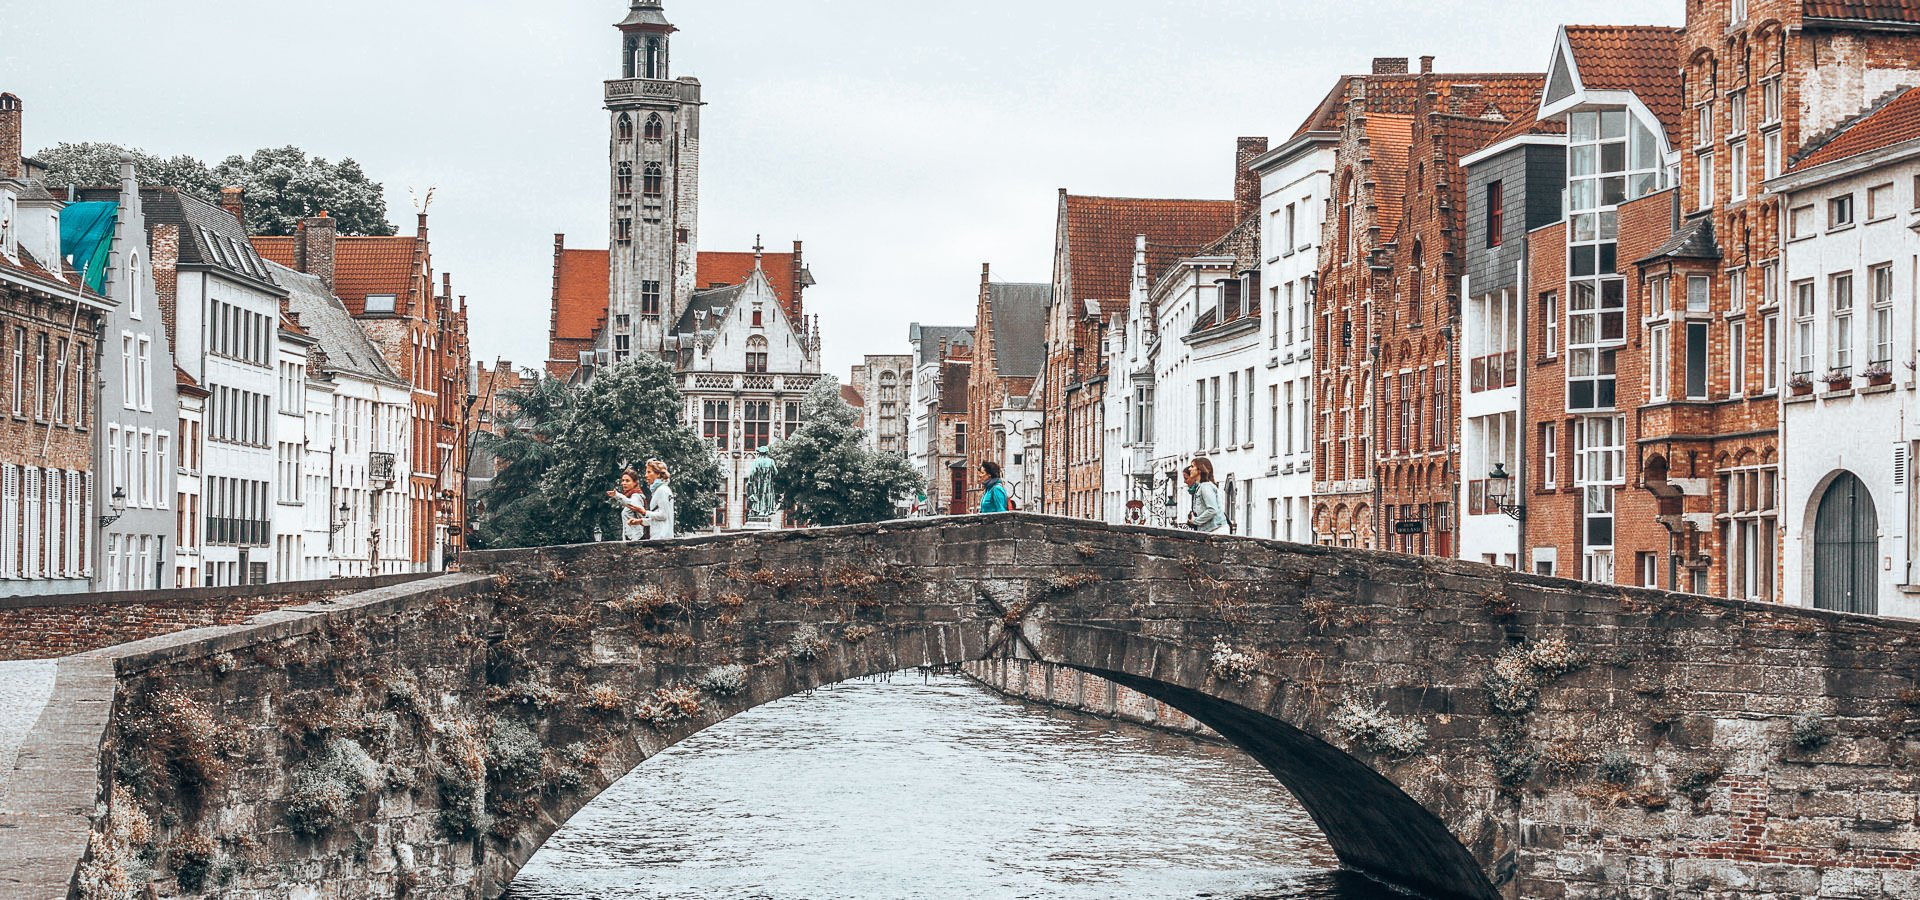 A Complete Guide To 24 Hours In Bruges | 24 hours in bruges 2